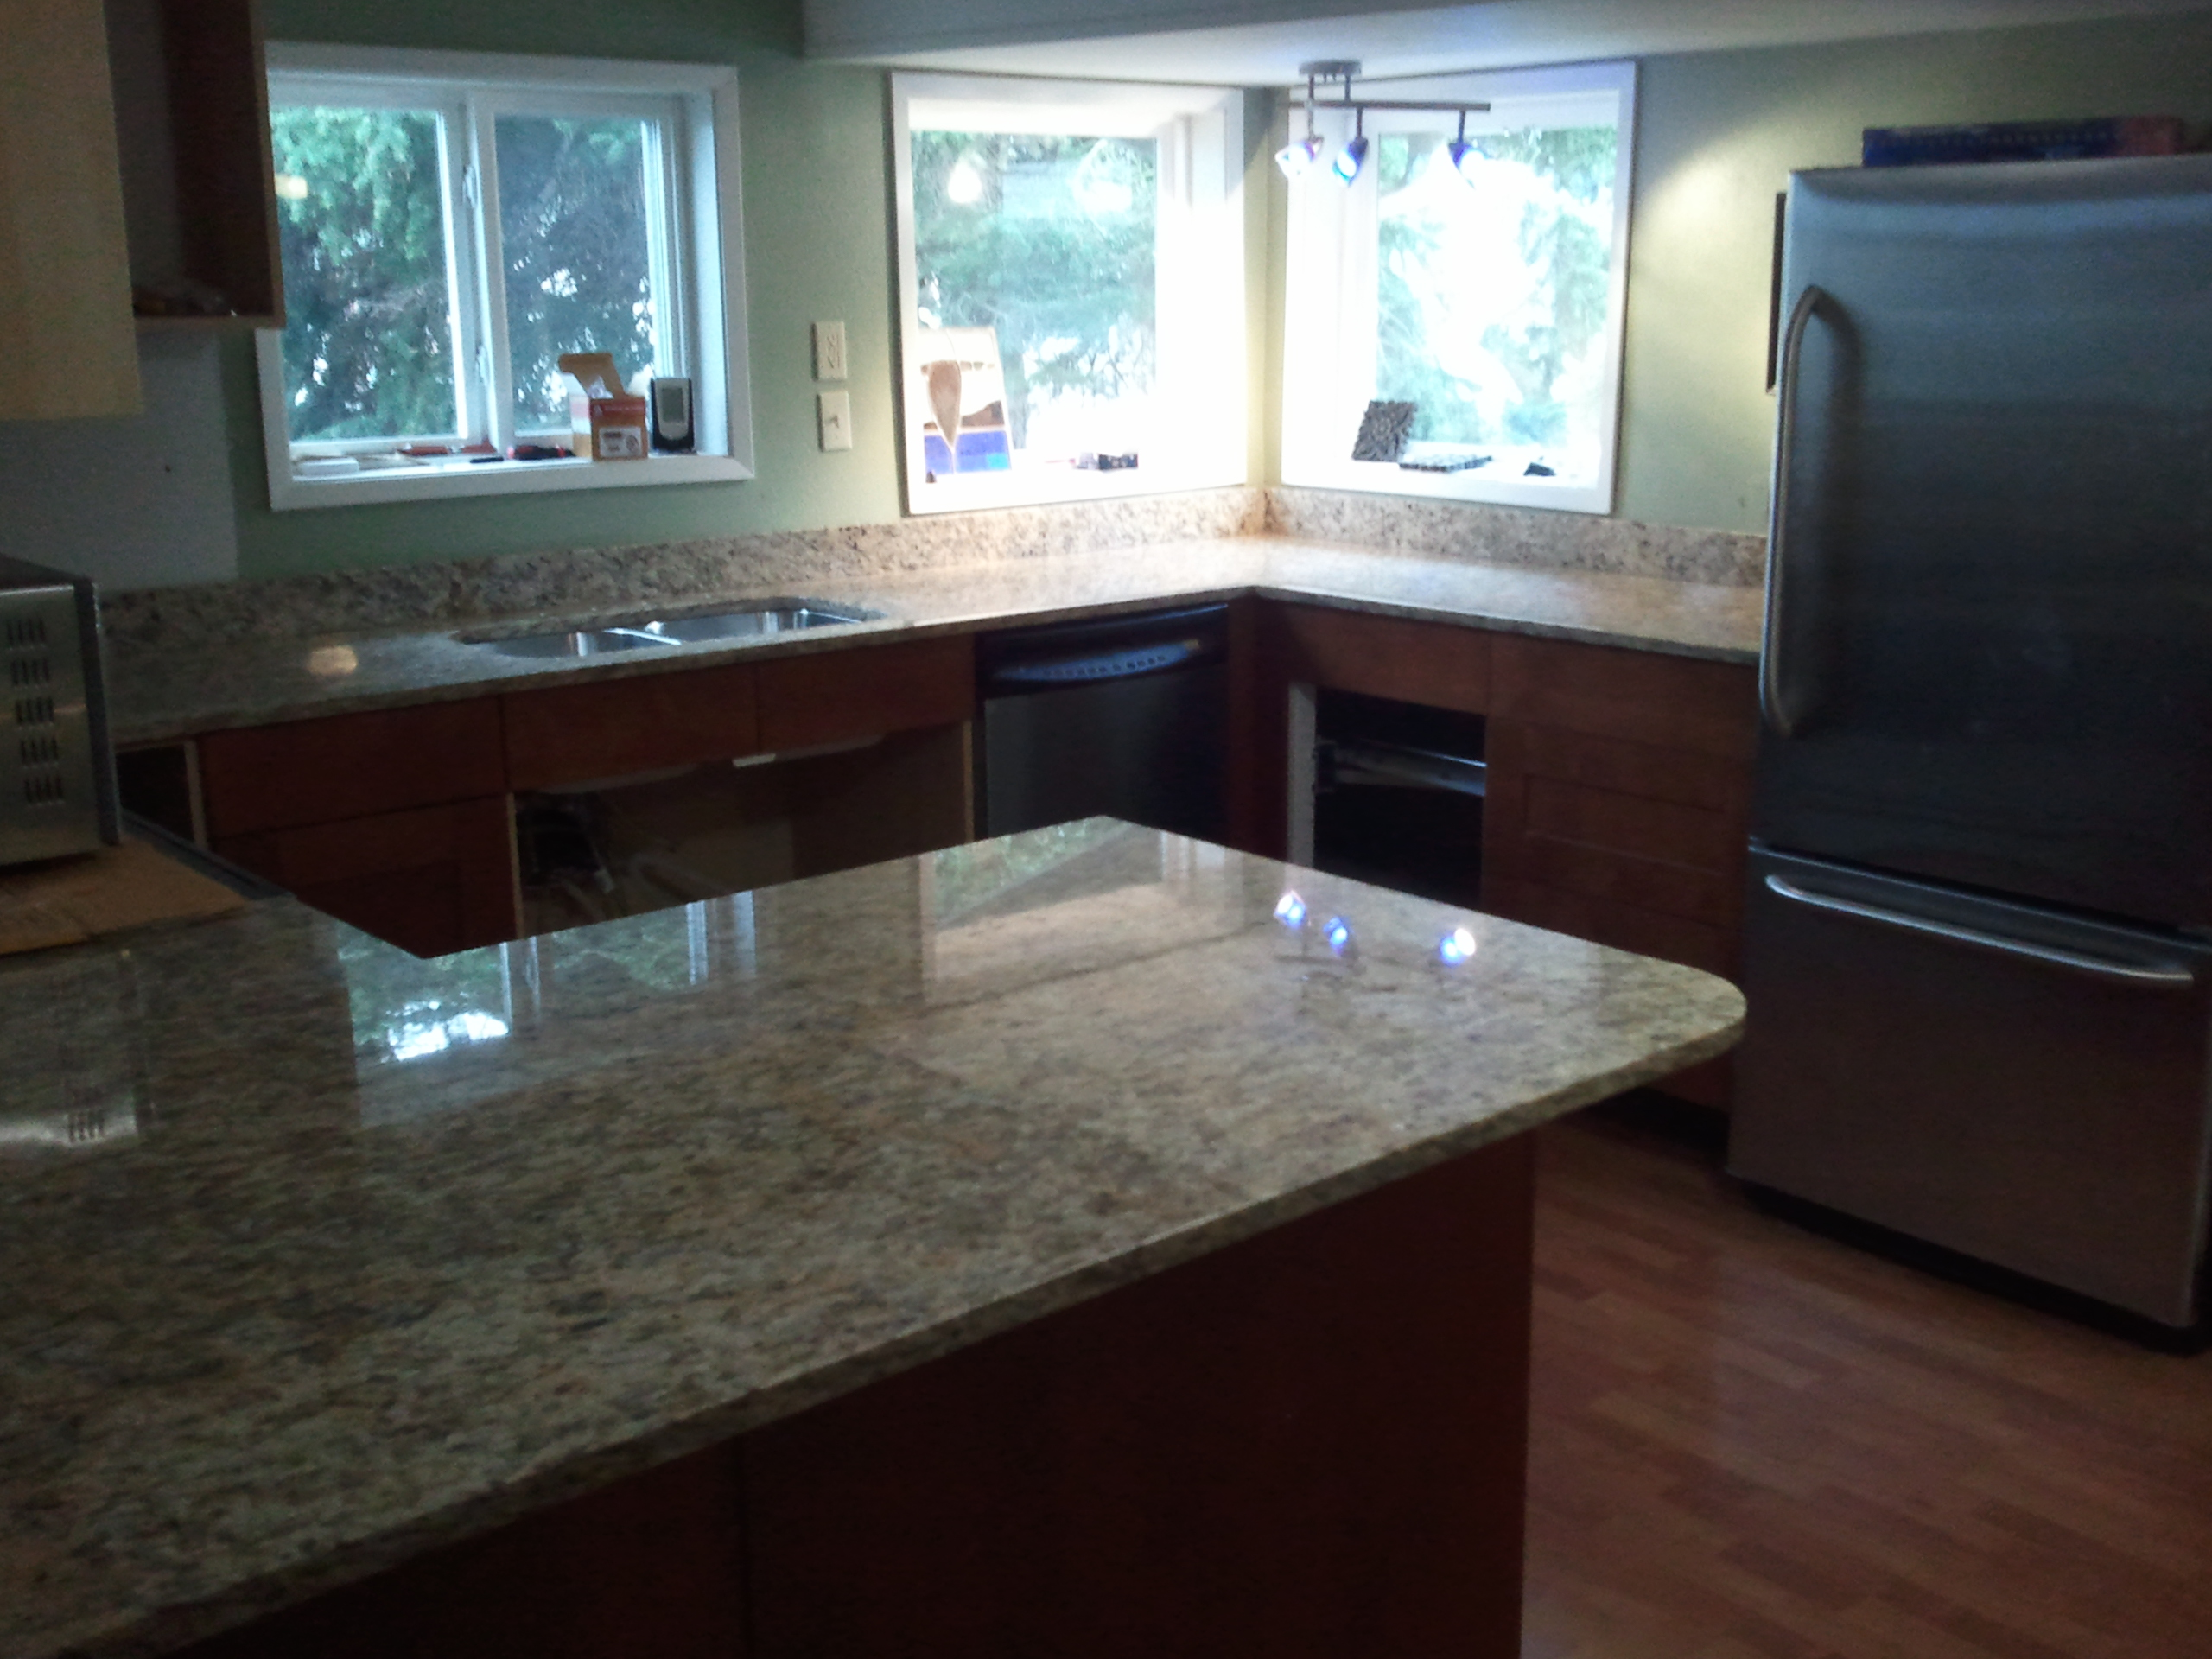 kitchenj fabricators installed average per laminate kitchena footage countertop granite the kitchen edges kitchens foot countertops of cost square